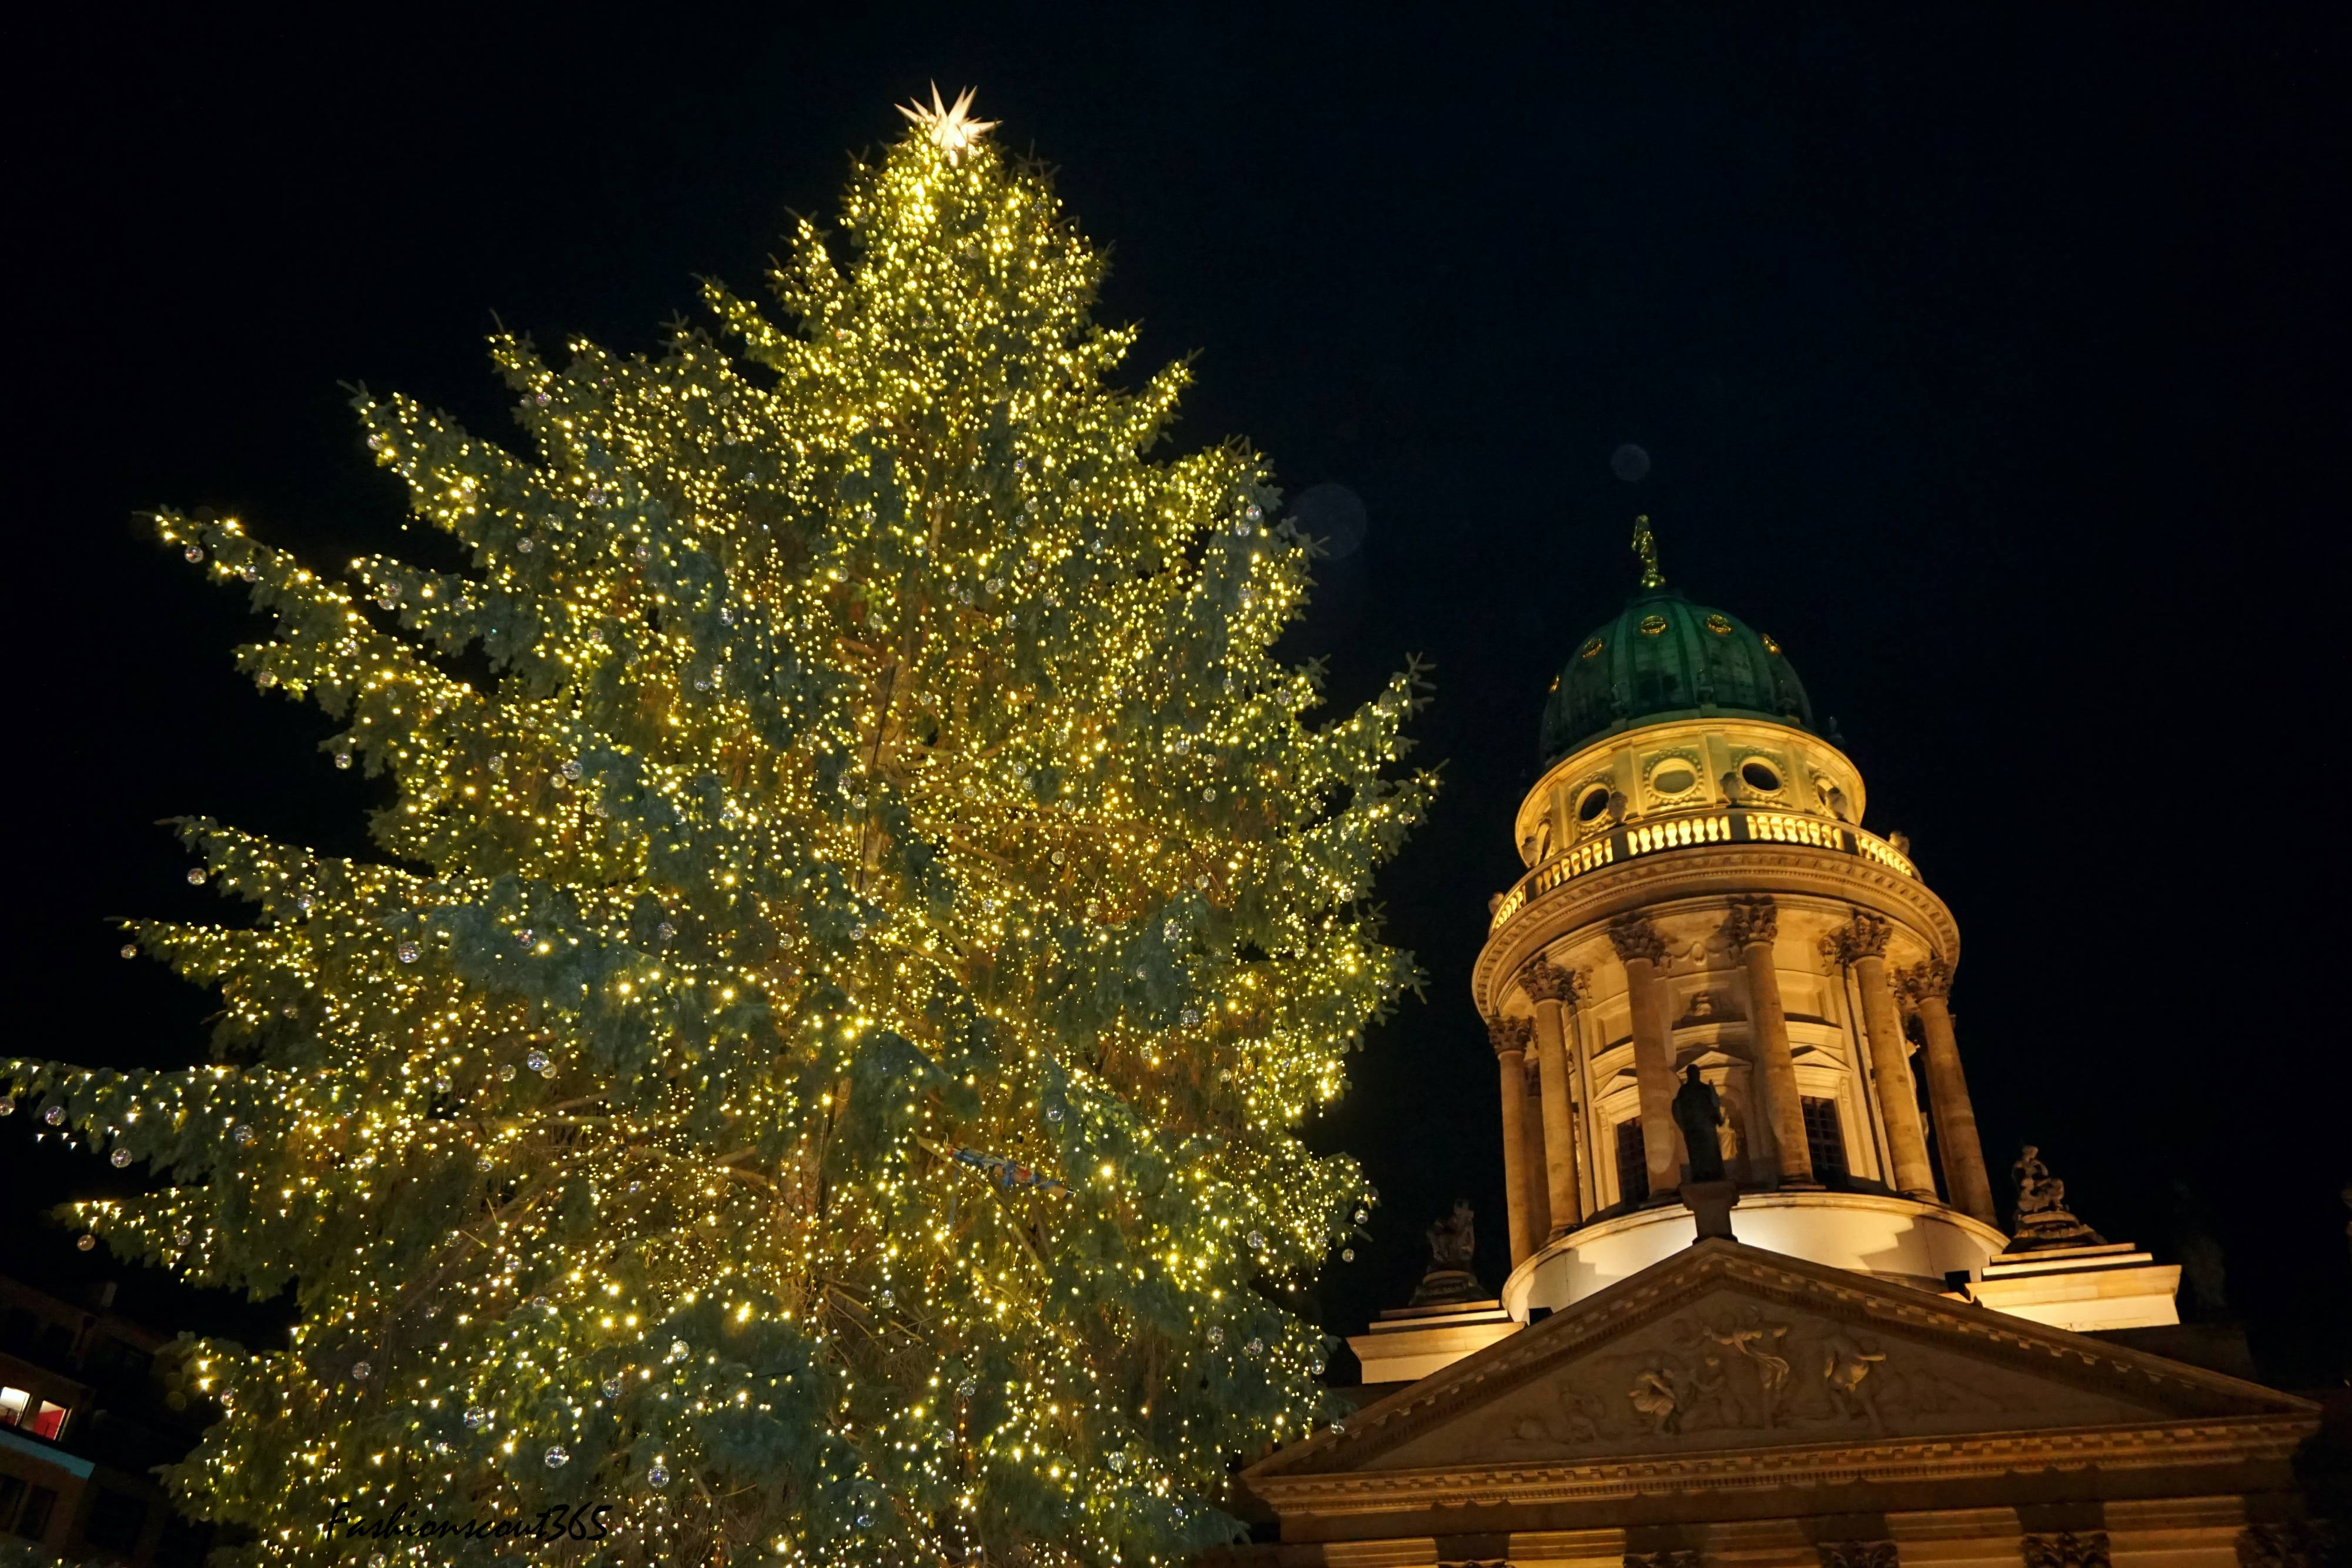 Highlights of Christmas markets am Gendarmenmarkt and an der Gedächtniskirche in Berlin